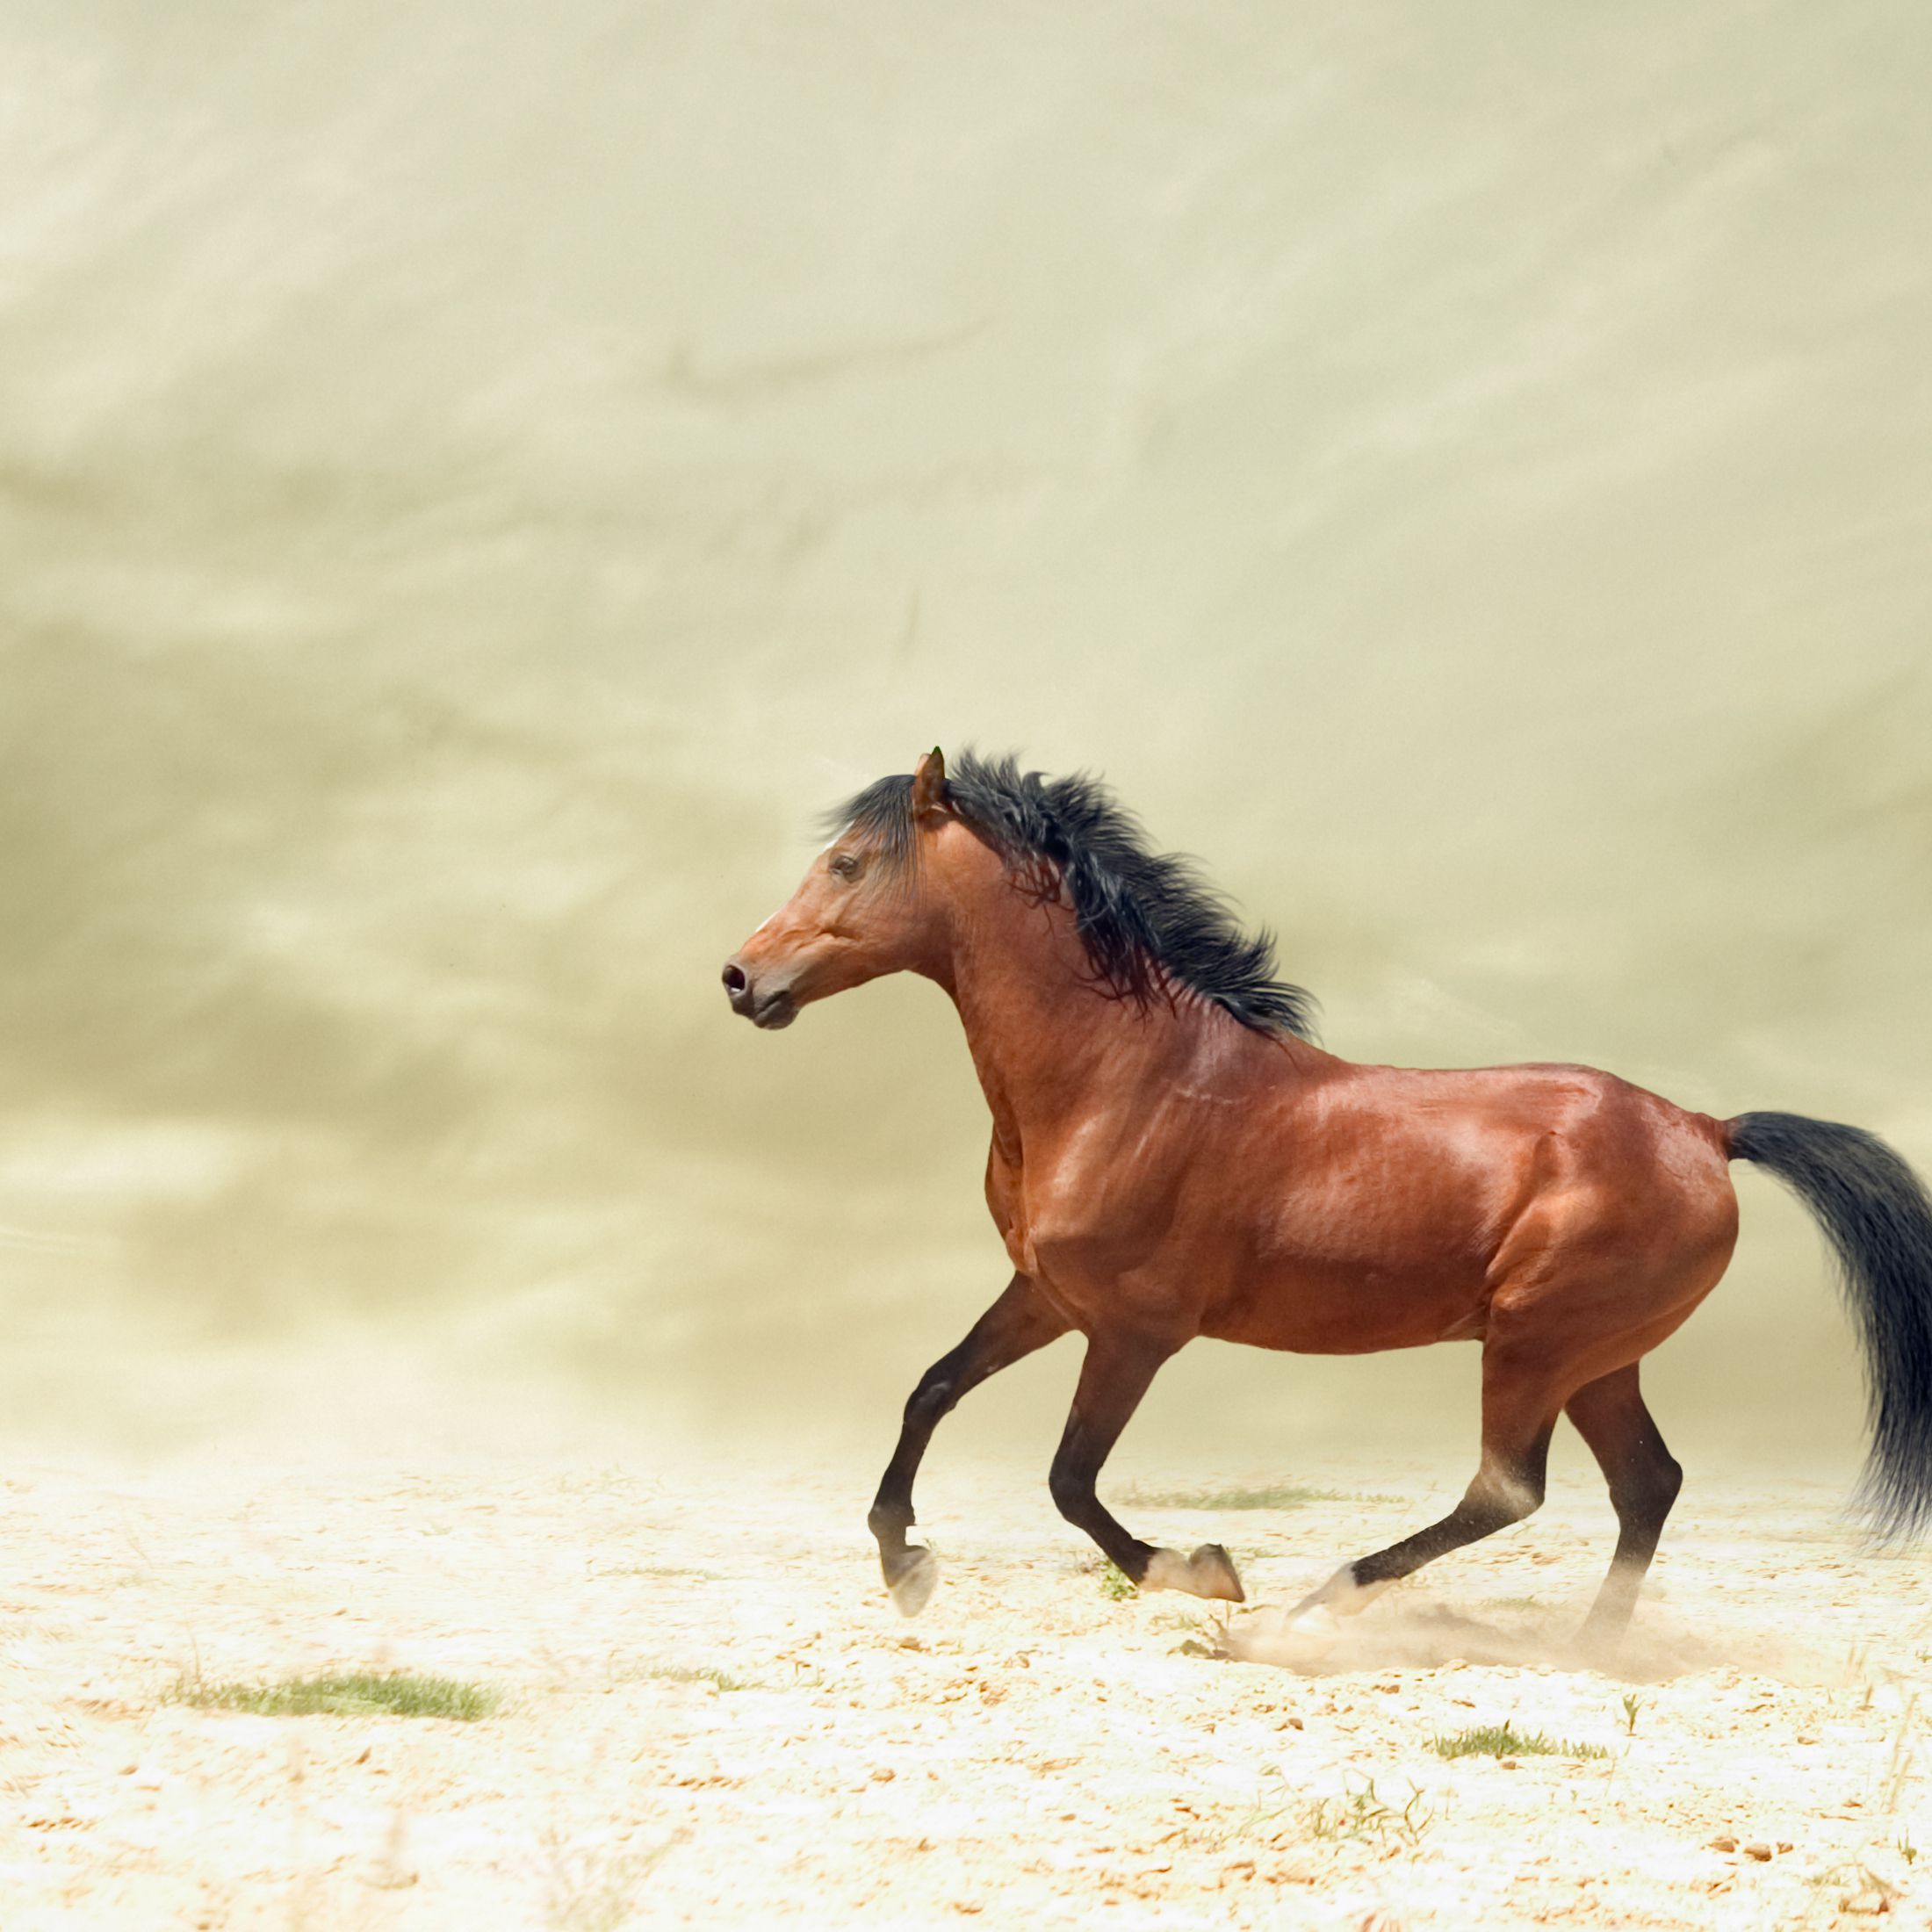 Famous Chinese Horse Proverb Sai Weng Lost His Horse